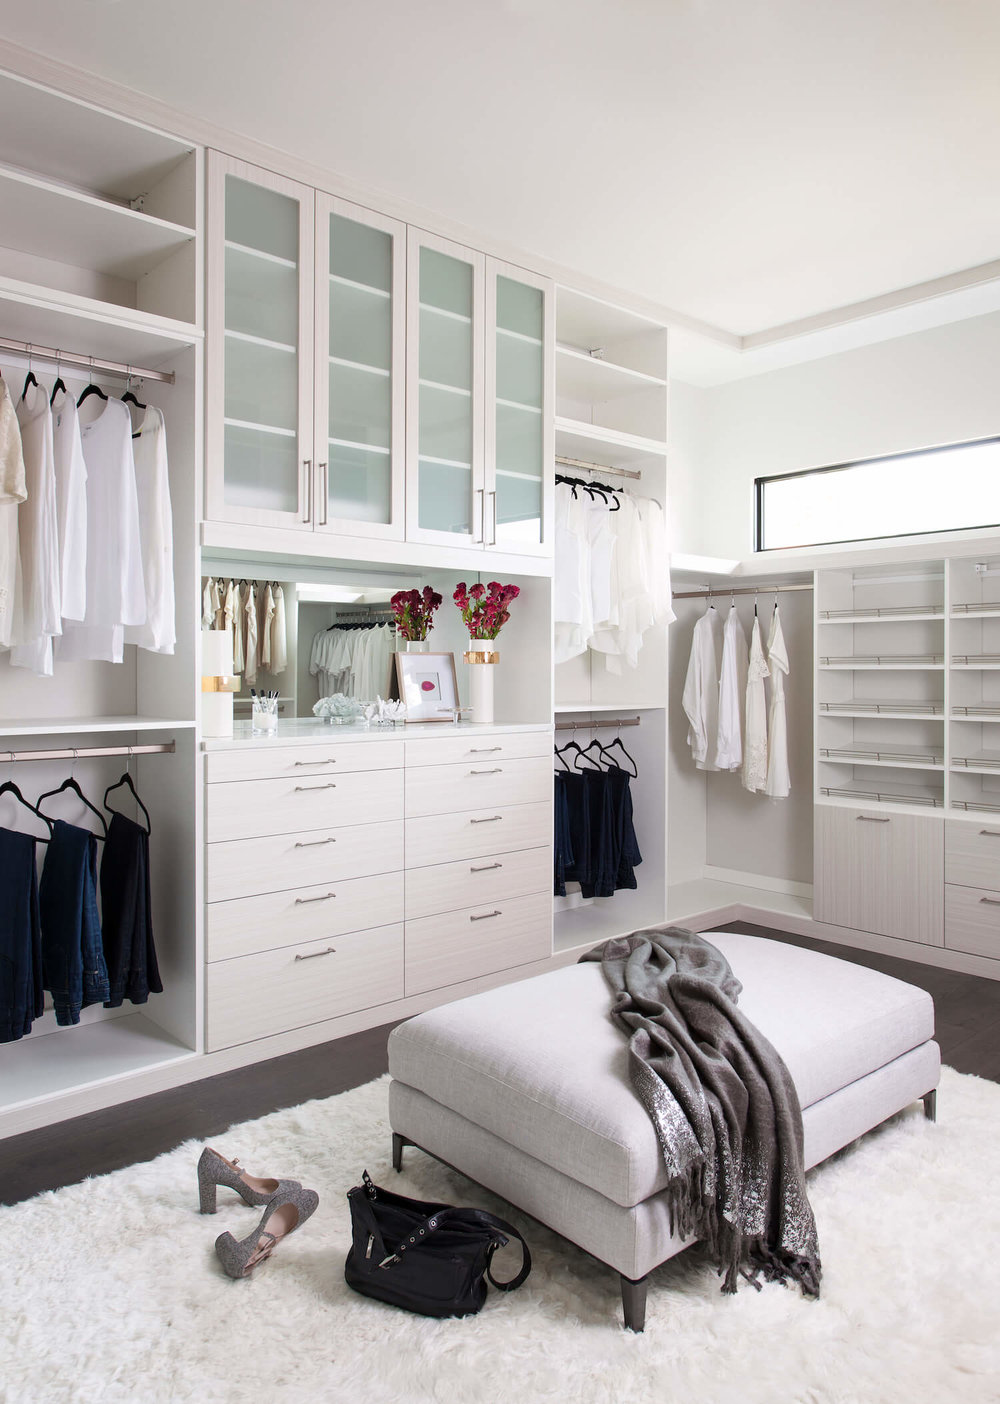 wc4 Cool ideas for walk-in closets that you should have in your home